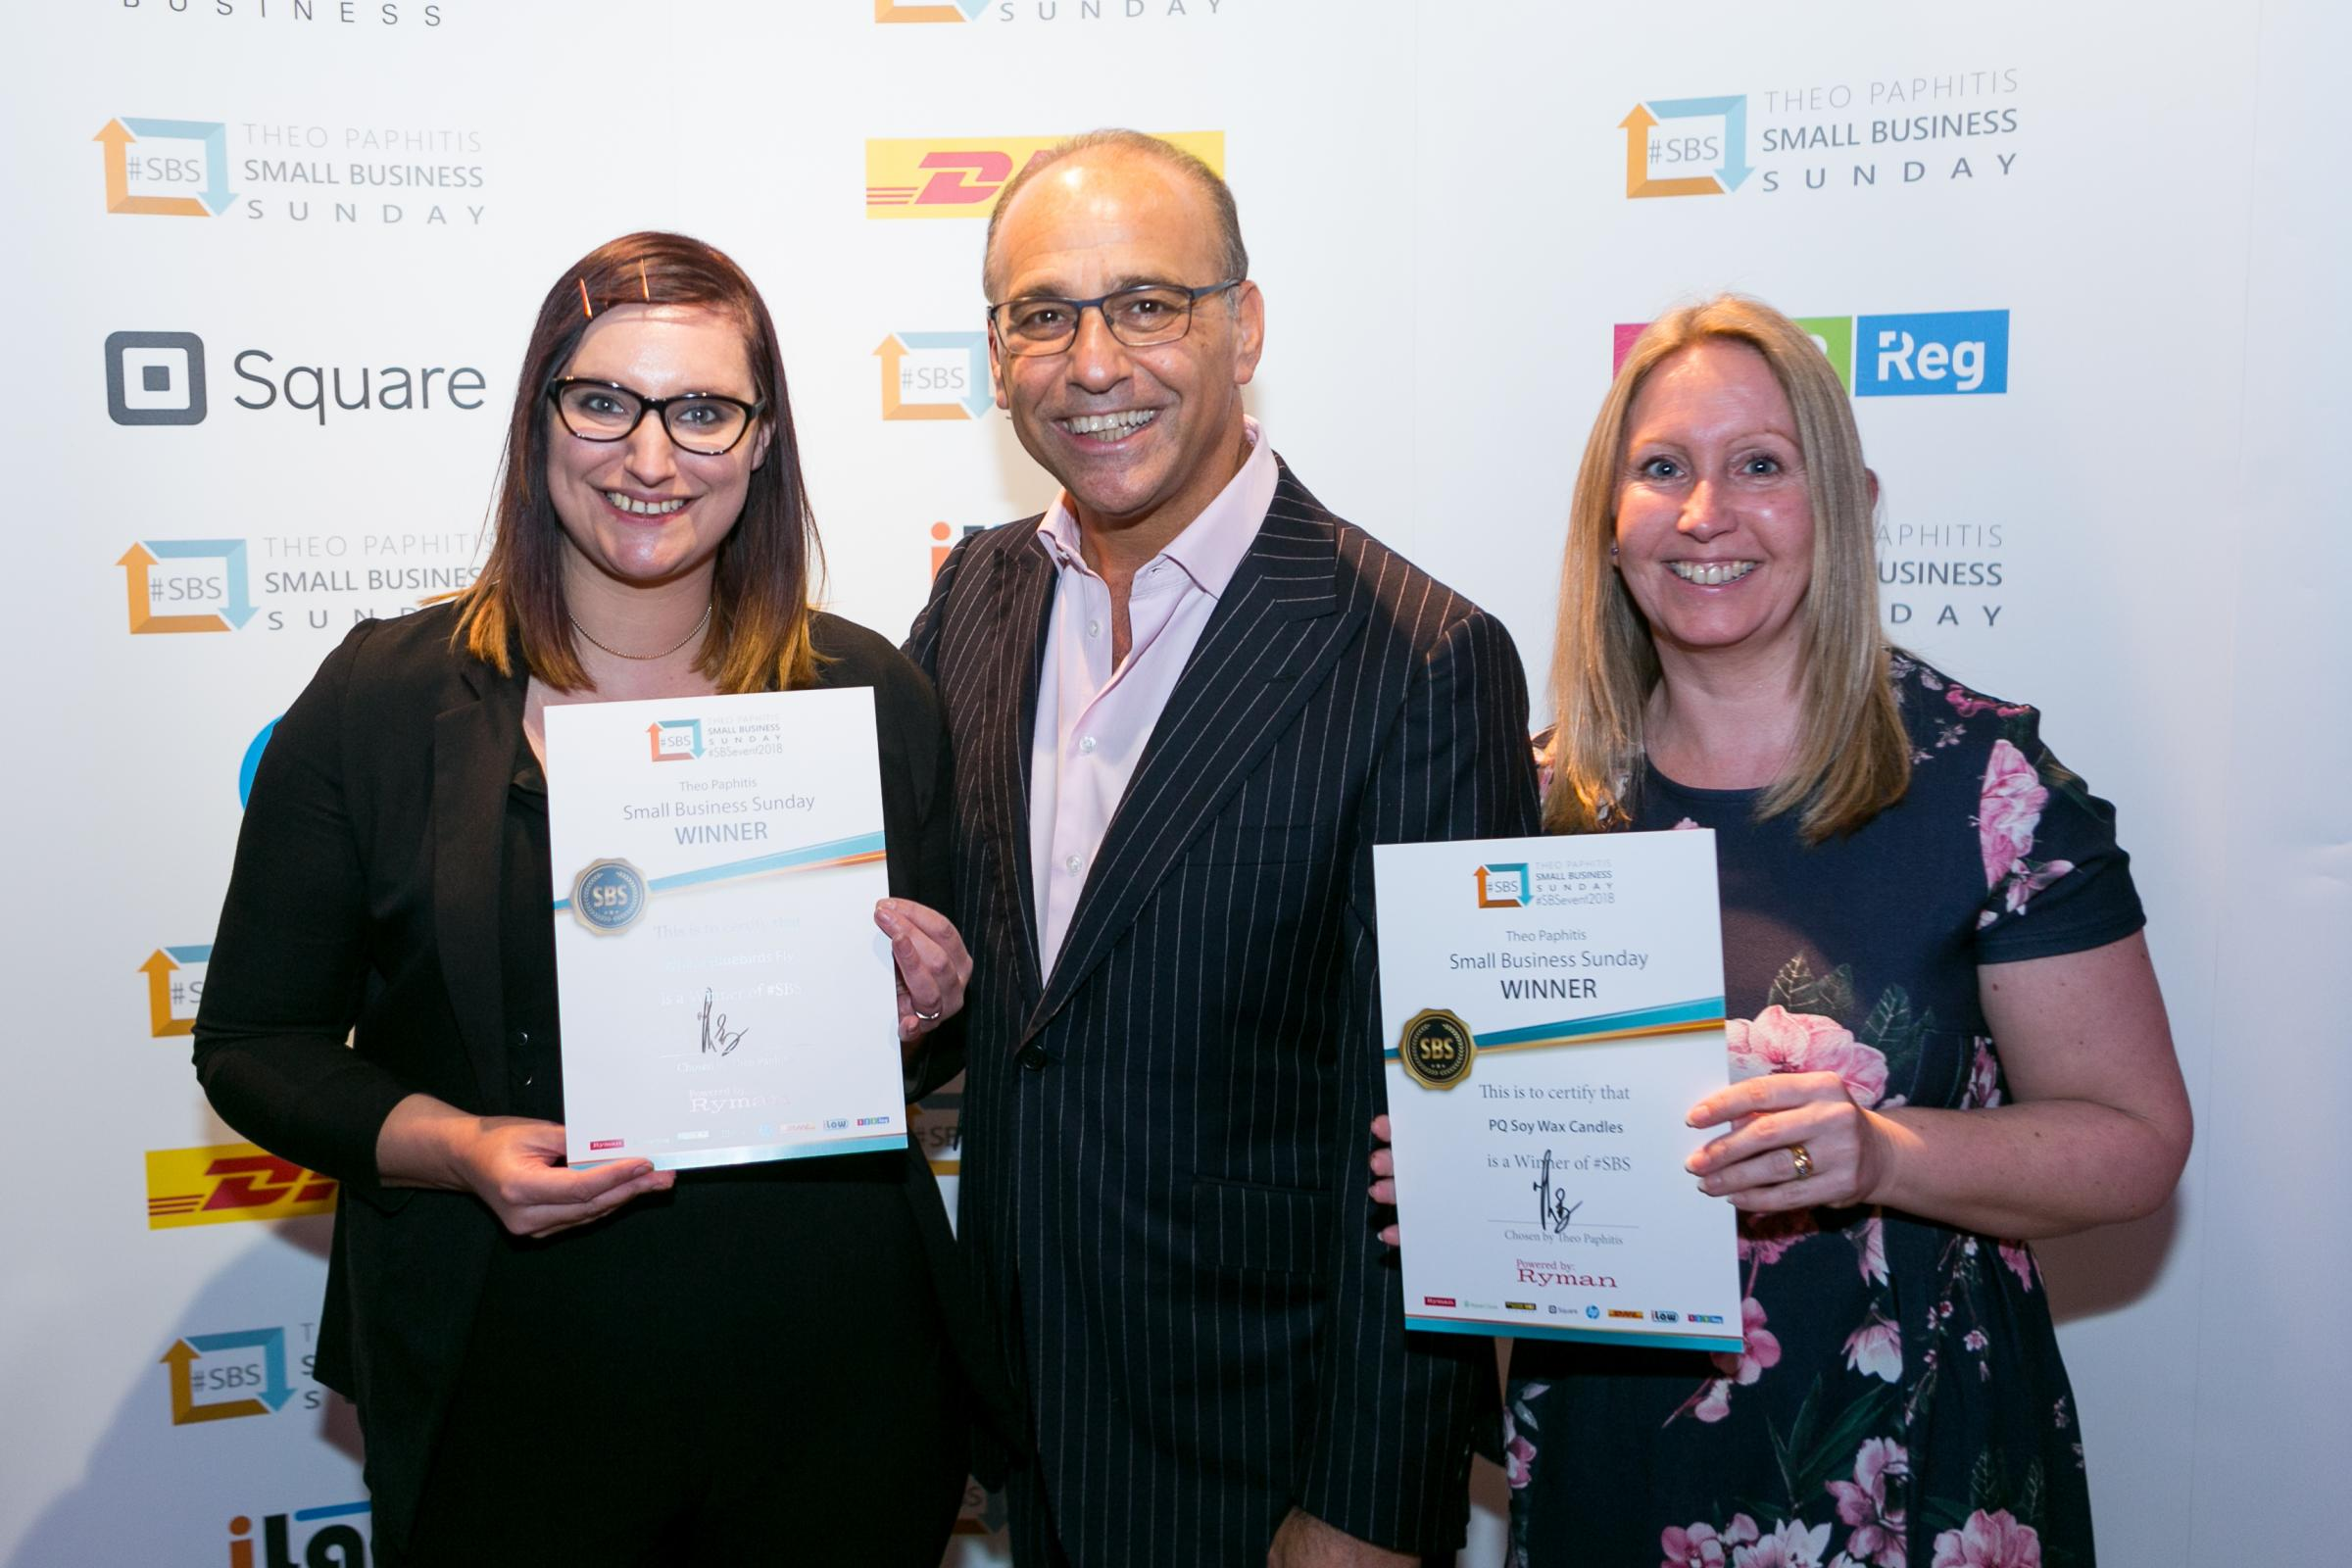 Laura Clarke of Where Bluebirds Fly, left, and Wendy Harris of PQ Soy Wax Candles, right, with Theo Paphitis